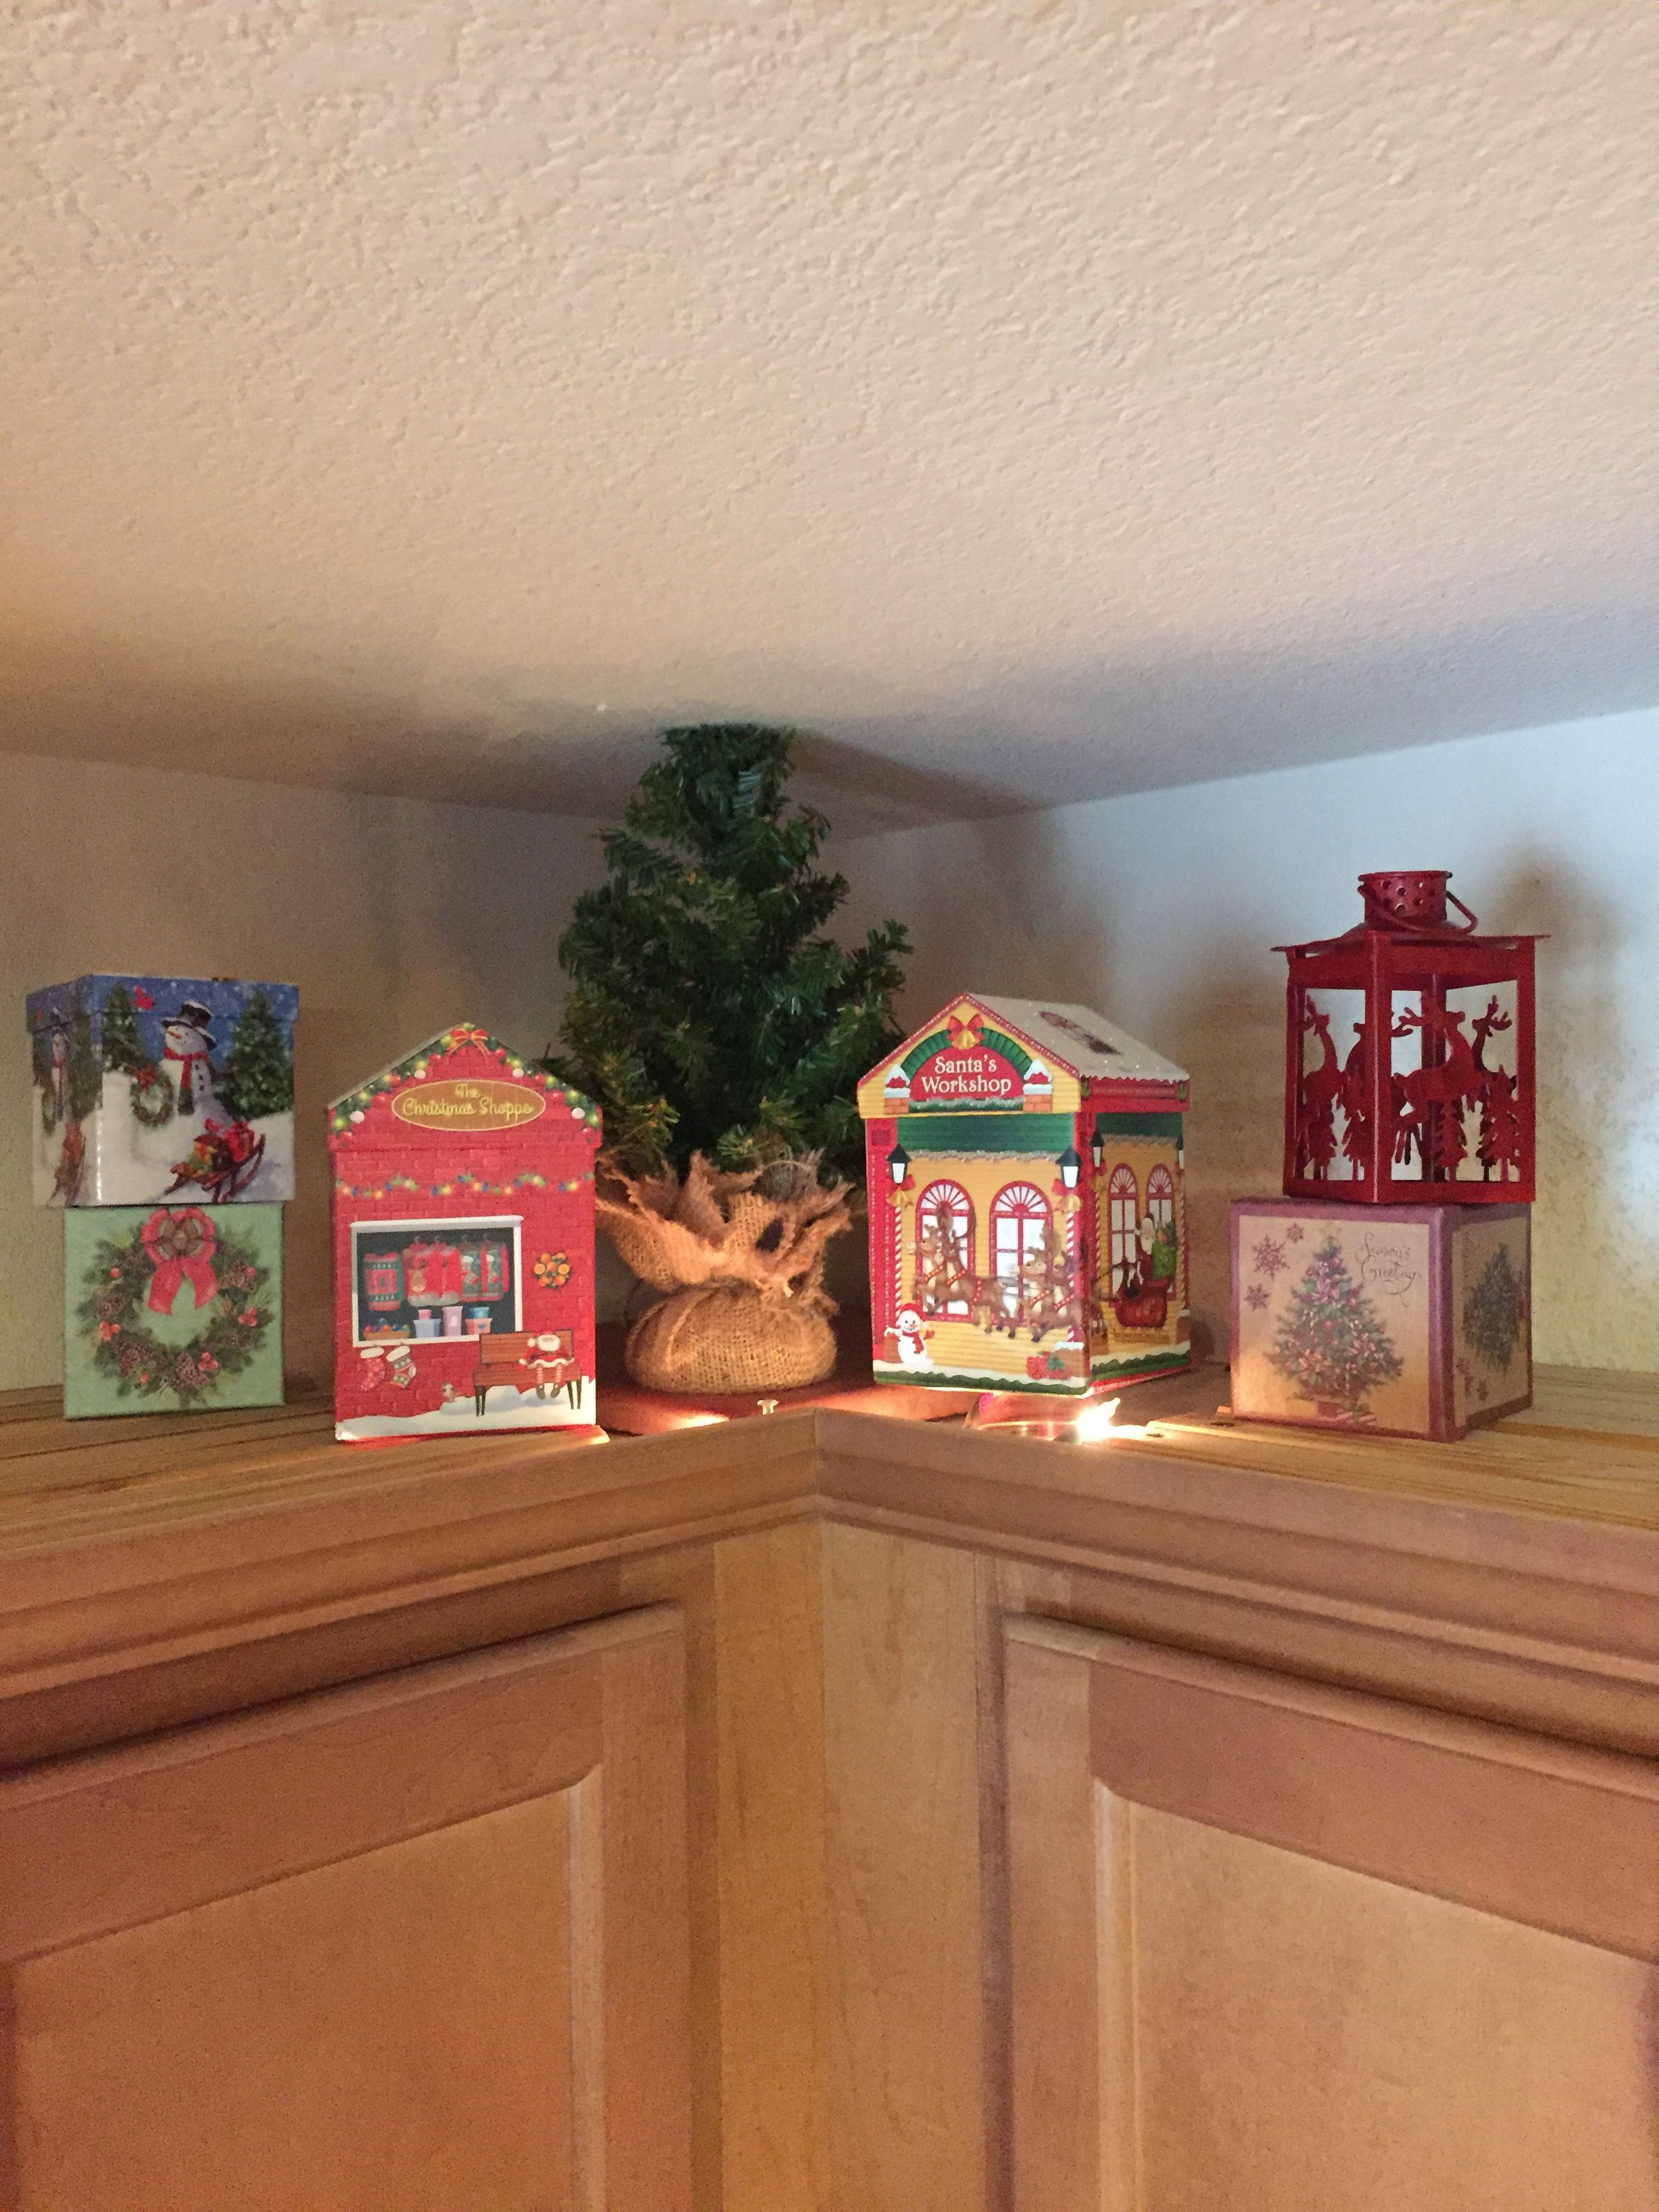 Pin by tina chesley on Christmas decor above kitchencabinets